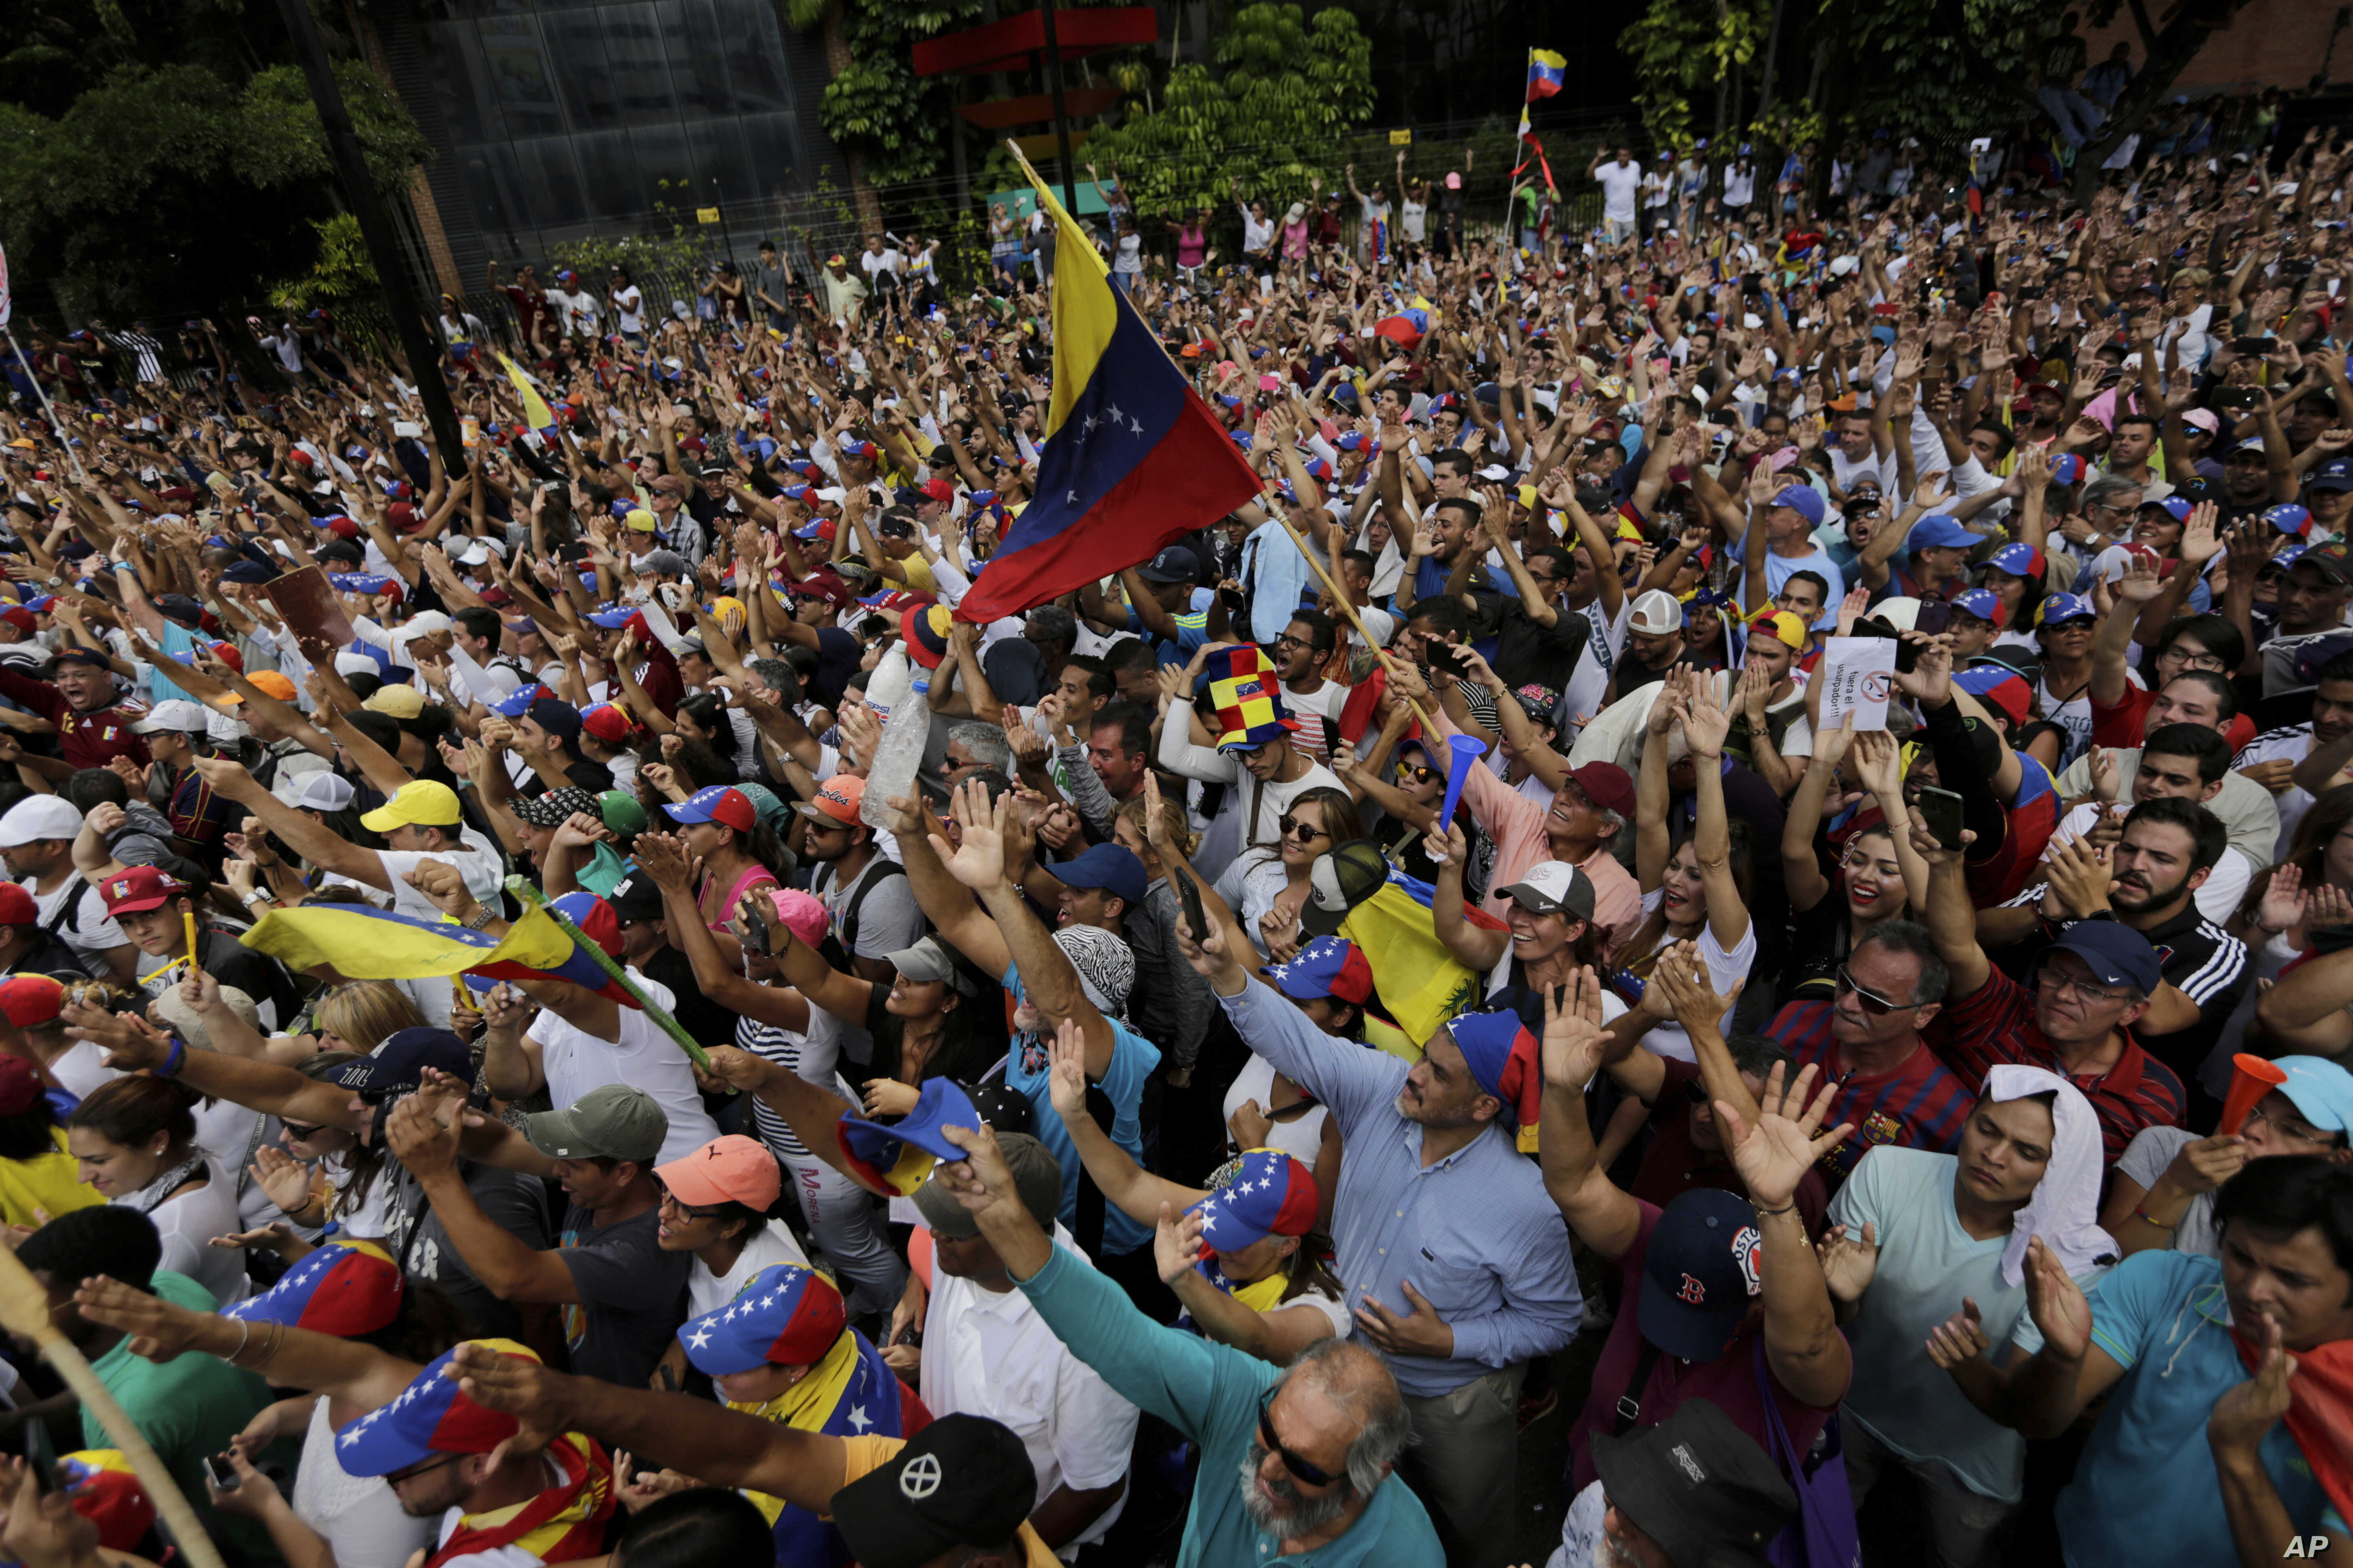 Anti-government protesters hold their hands up during the symbolic swearing-in of Juan Guaido, head of the opposition-run congress who declared himself interim president of Venezuela until elections can be called, during a rally demanding President N...